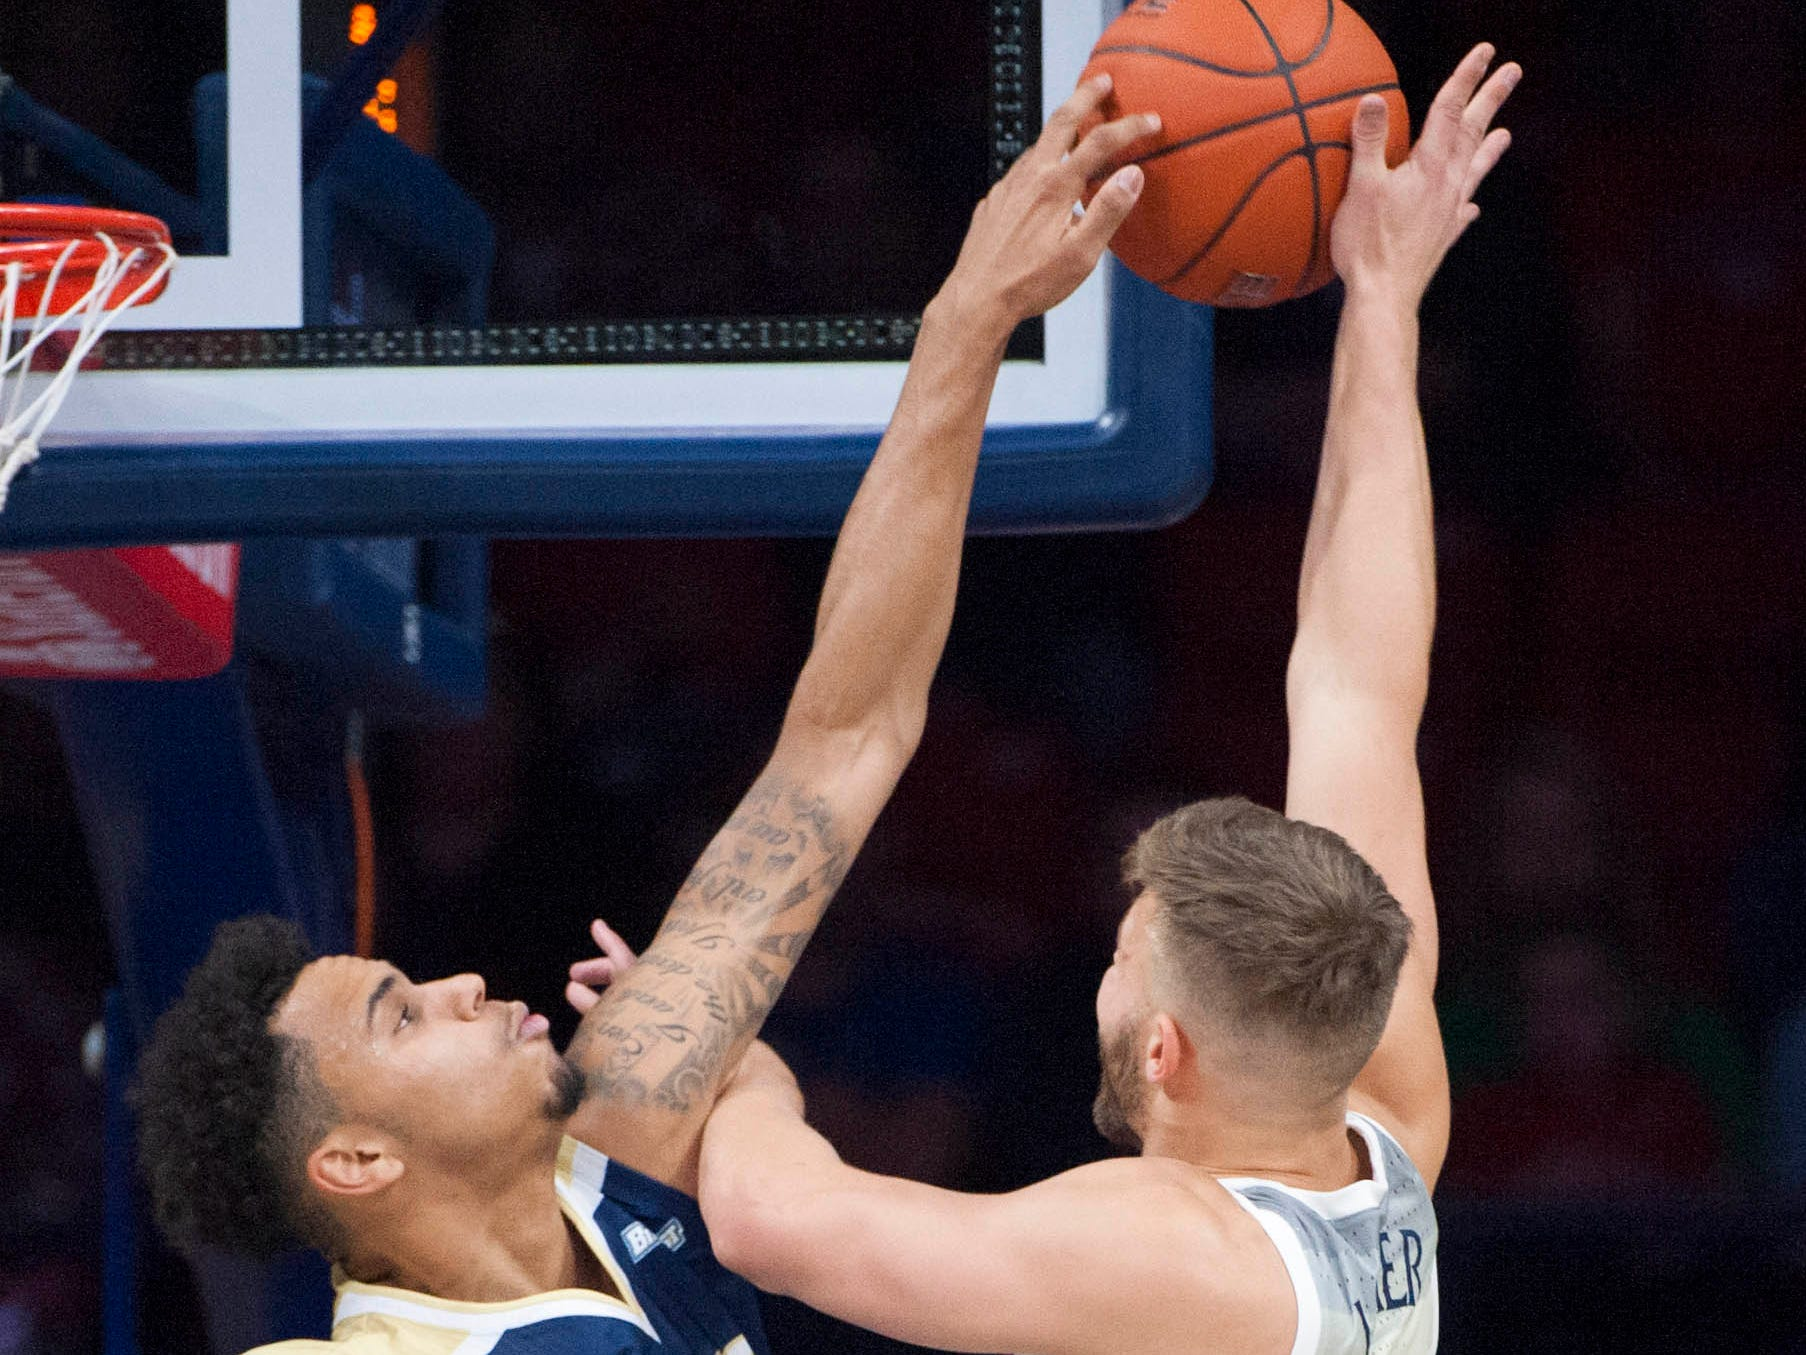 Dec 22, 2018; Tucson, AZ, USA; UC Davis Aggies guard Caleb Fuller (11) blocks the shot of Arizona Wildcats forward Ryan Luther (10) during the first half at McKale Center. Mandatory Credit: Casey Sapio-USA TODAY Sports